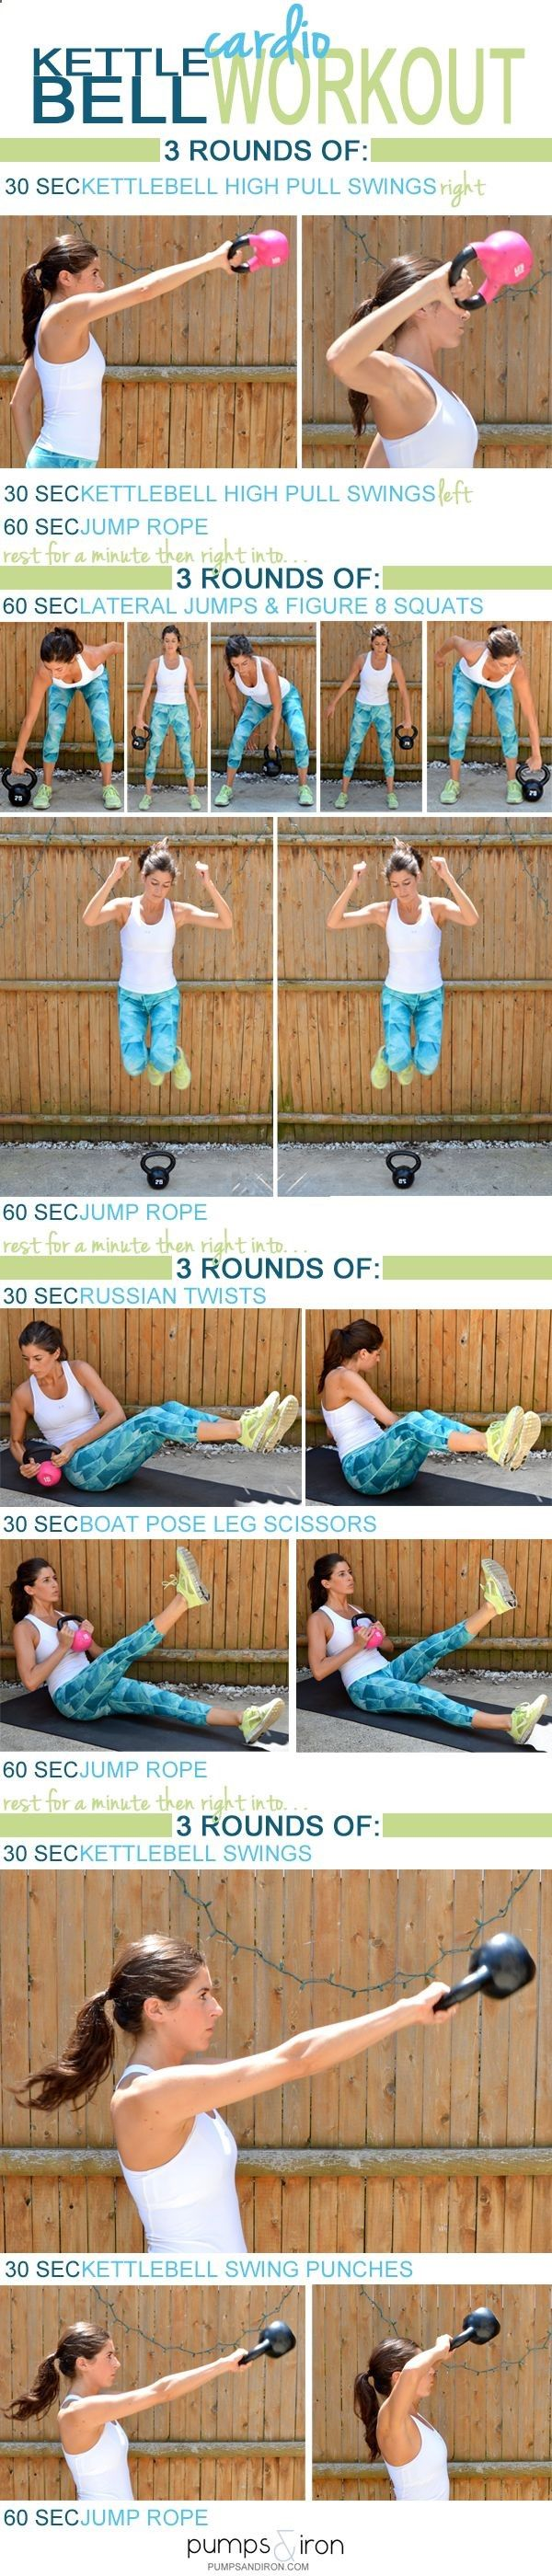 Kettlebell Cardio Workout -- takes 30 minutes and youll need a heavy and lighter kettlebell and jump rope | Posed By: AdvancedWeightLossTips.com